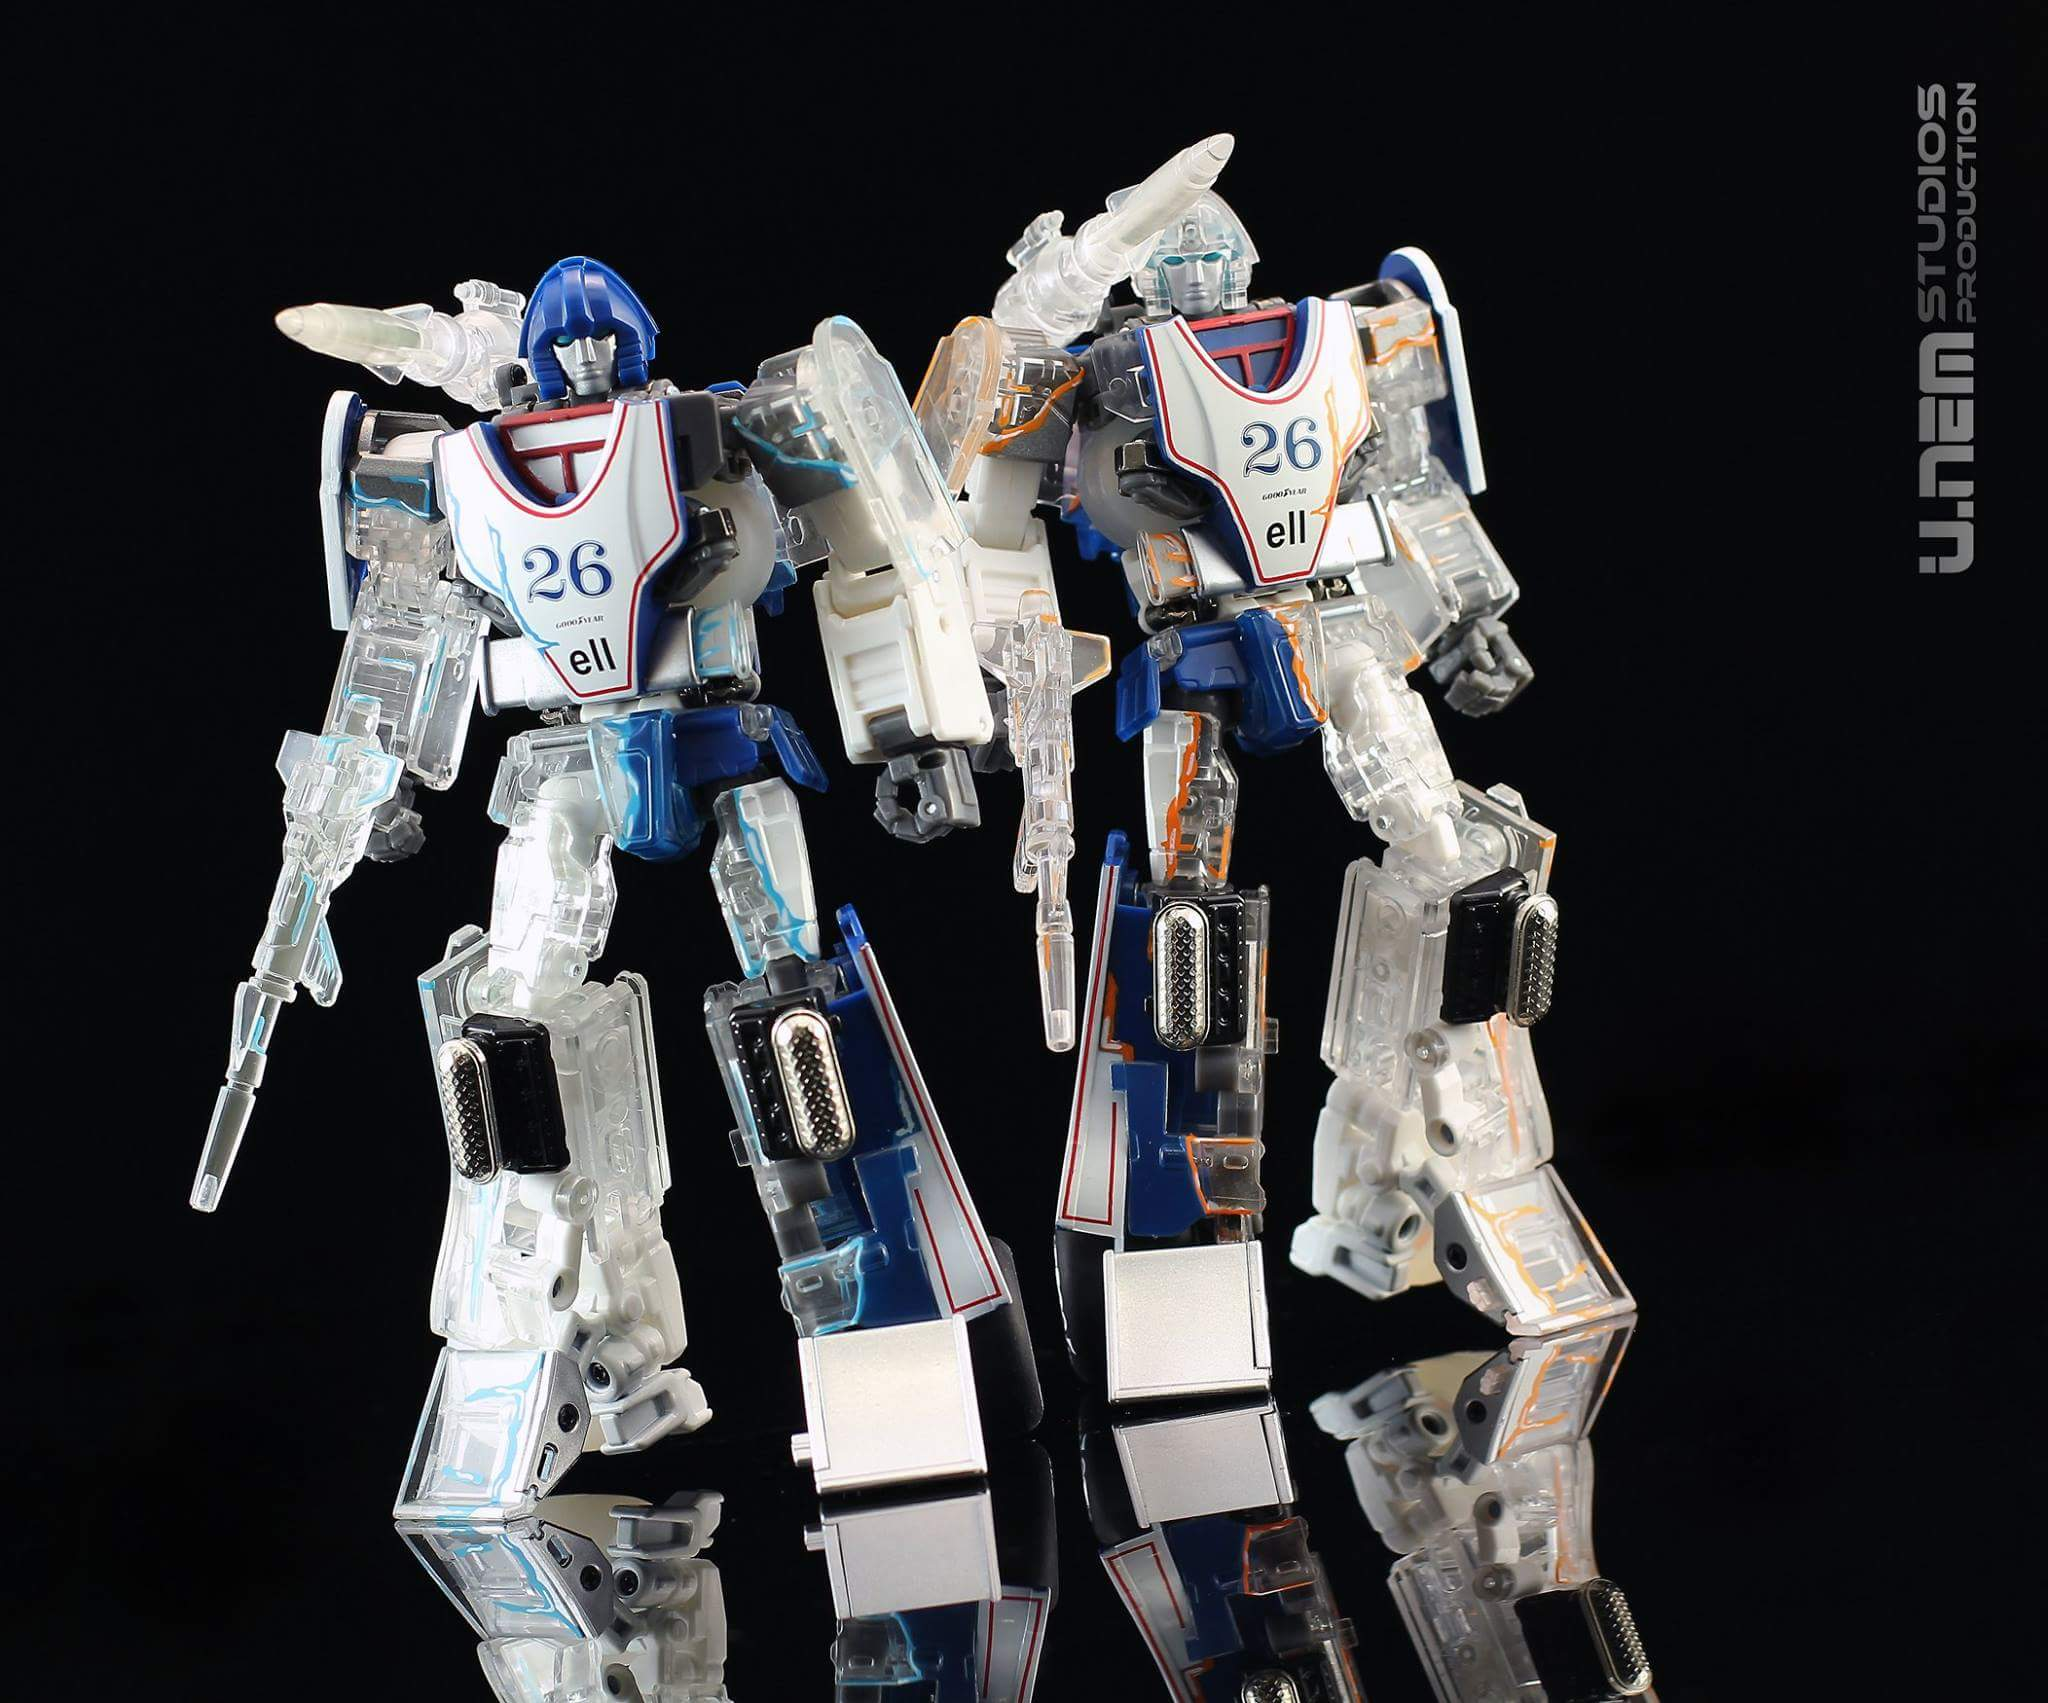 [Ocular Max] Produit Tiers - PS-01 Sphinx (aka Mirage G1) + PS-02 Liger (aka Mirage Diaclone) - Page 3 6FDGrNxs